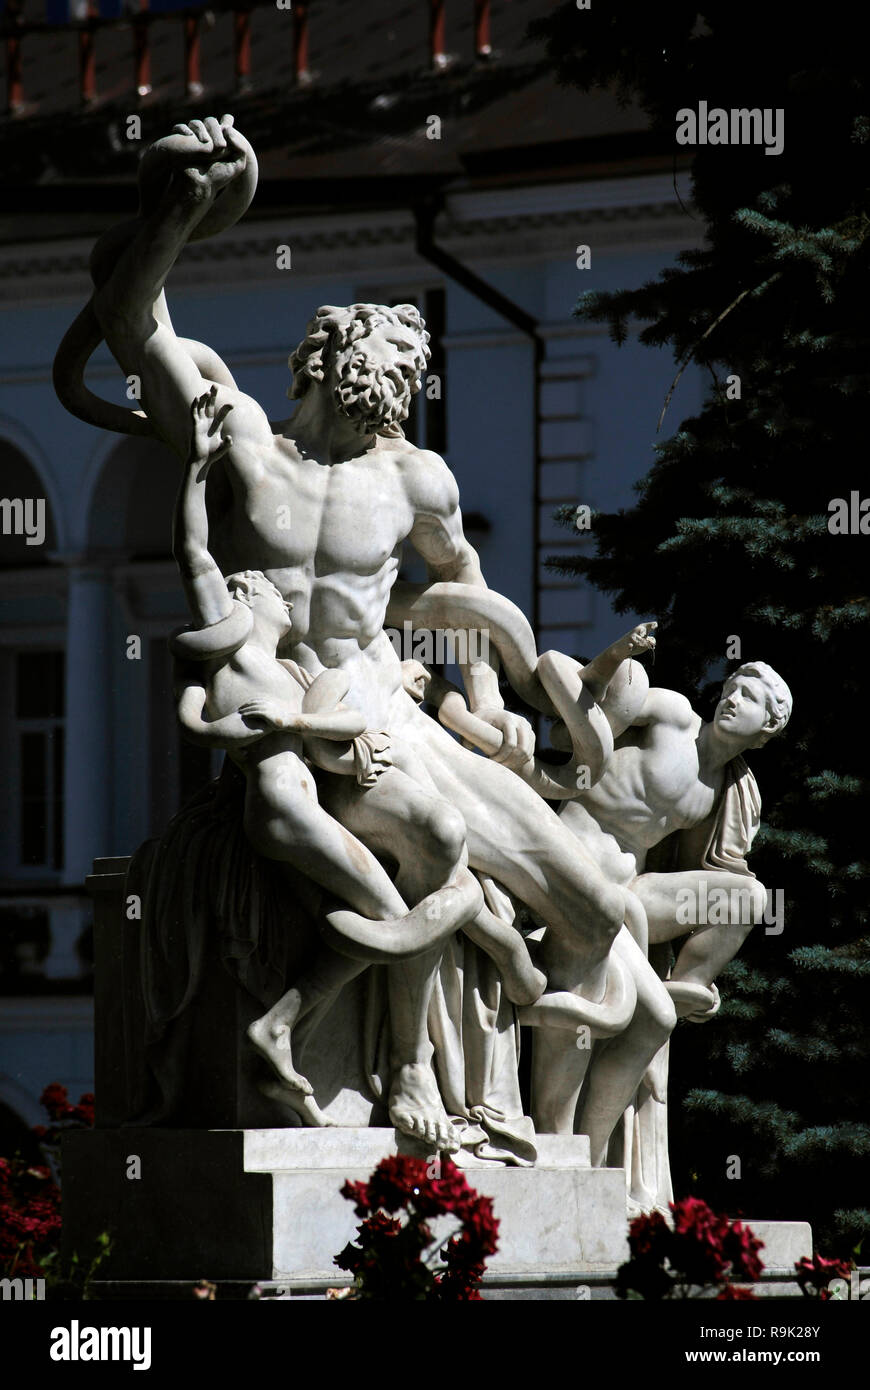 Odessa Archaeological Museum. Copy of the famous sculptural group Laocoon and his Sons, located in front of the facade. Odessa, Ukraine. - Stock Image